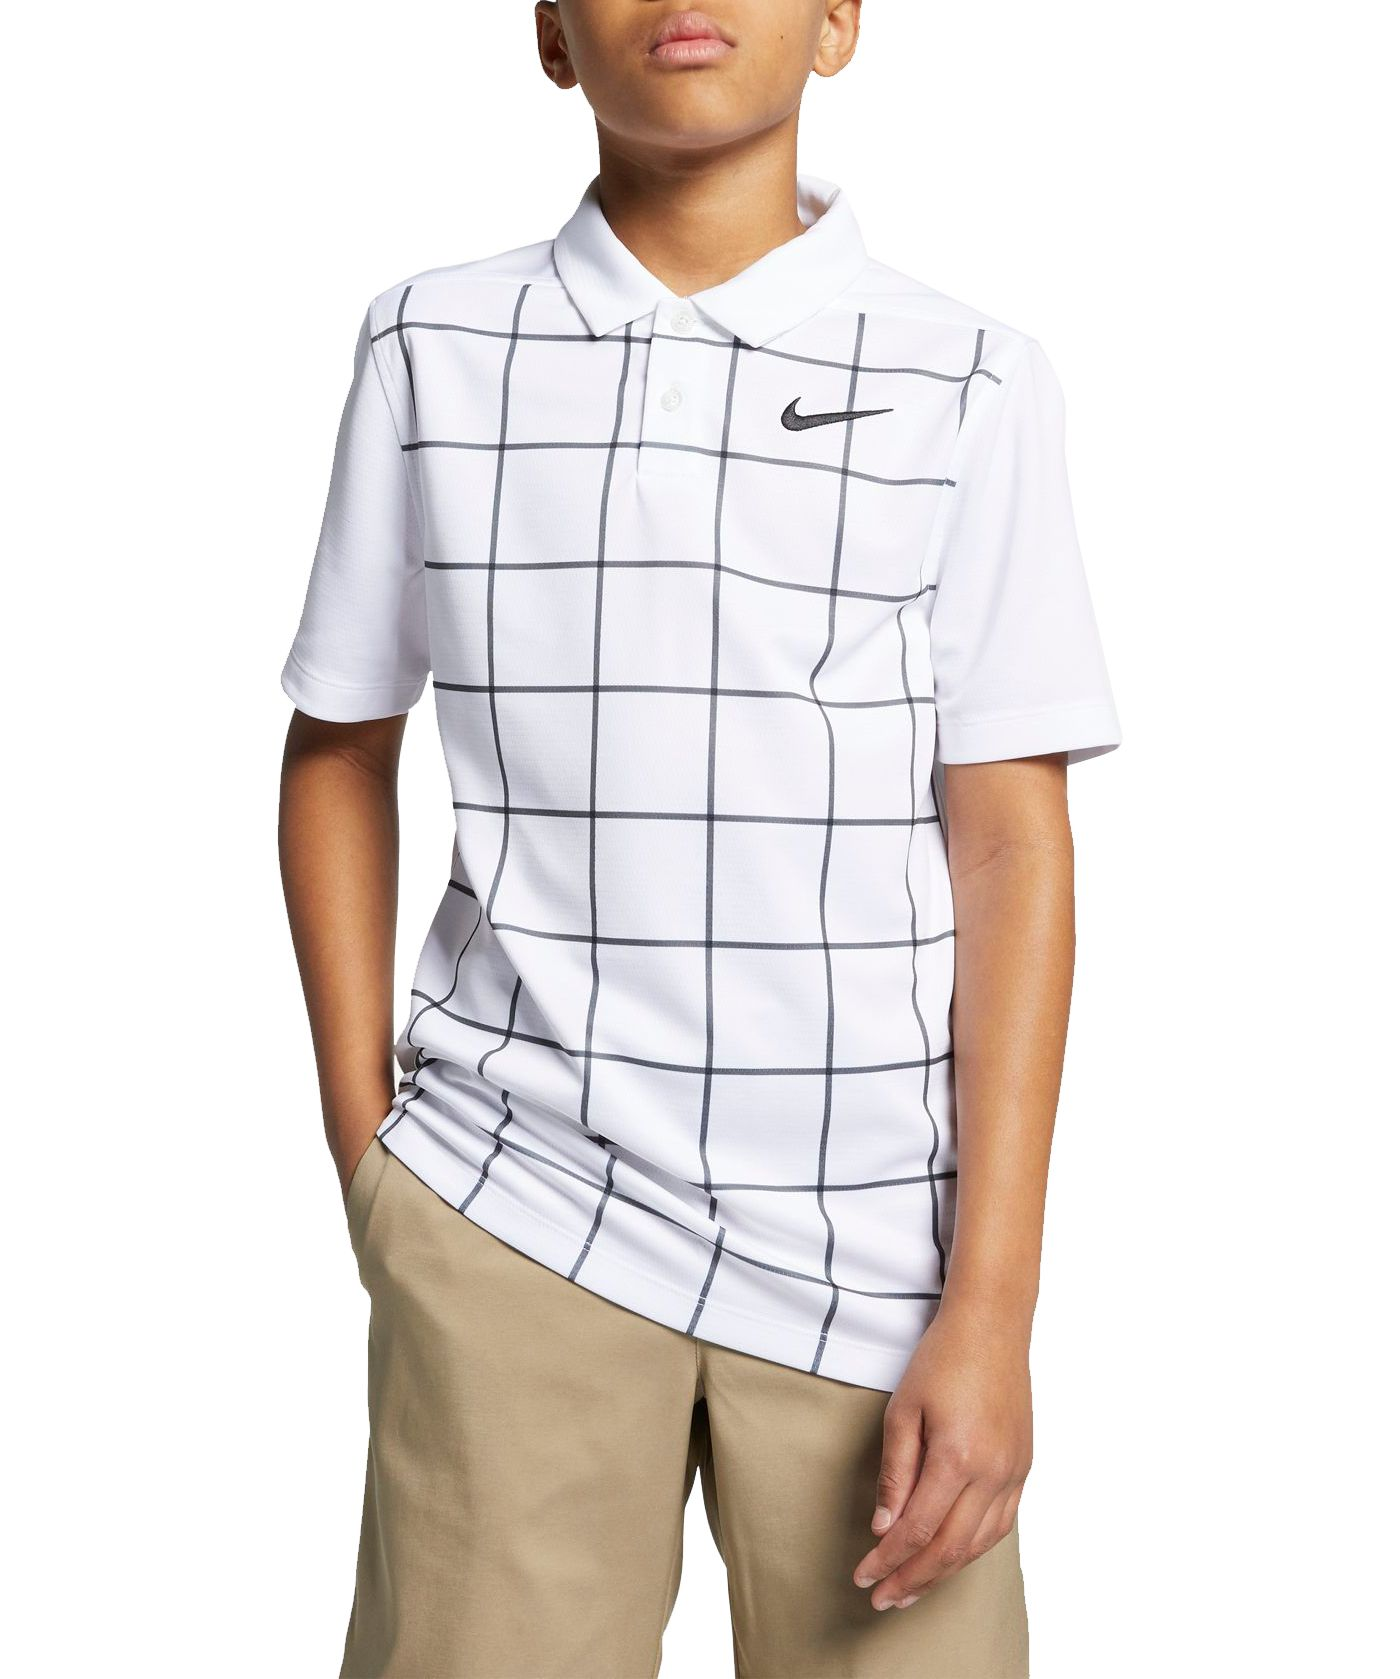 Nike Boys' Dry Grid Print Golf Polo